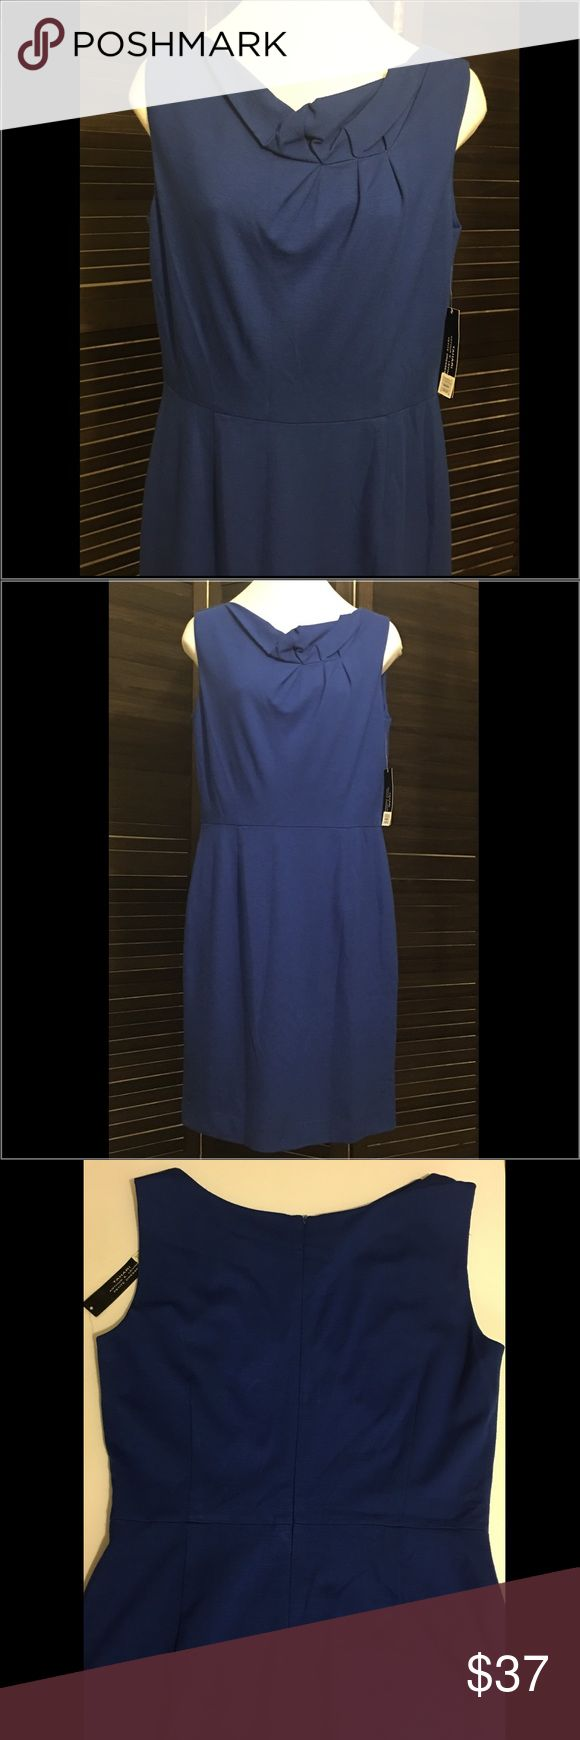 NEW TAHARI SOFIE BLUE DRESS New tahari sofie dress/ size: 8 P / color: Blue /MSRP: 128.00 / No Weekend shipping!!! Thank you!!! Tahari Dresses